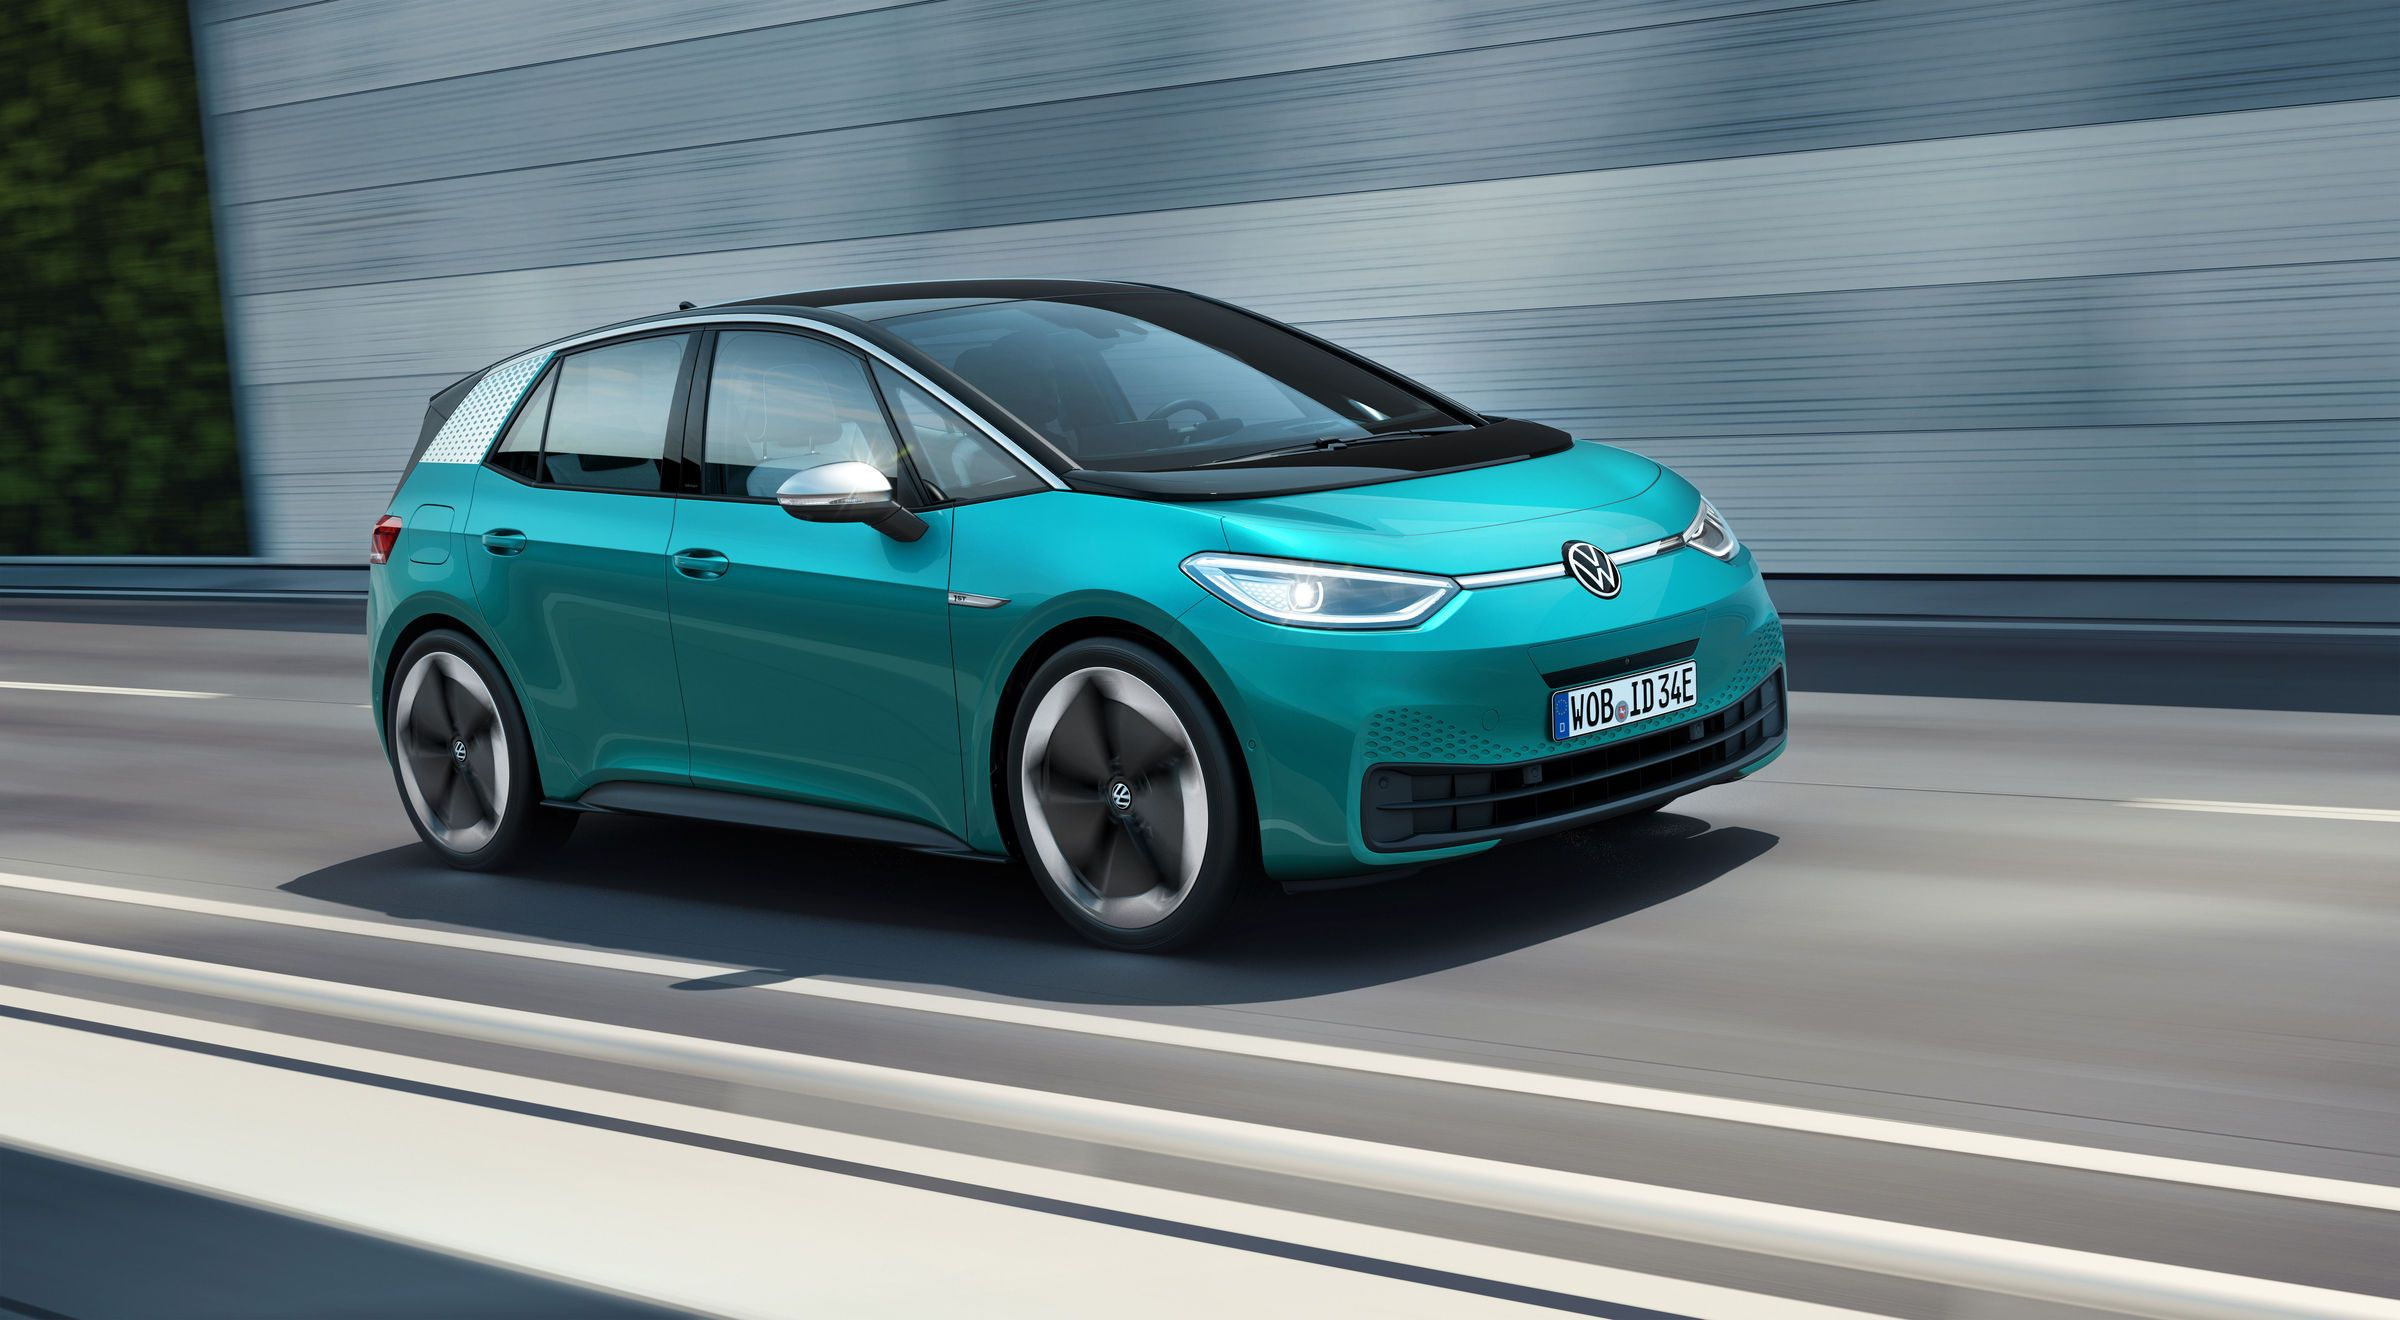 2020 Volkswagen ID.3 Electric Hatch Revealed With 341-Mile Range